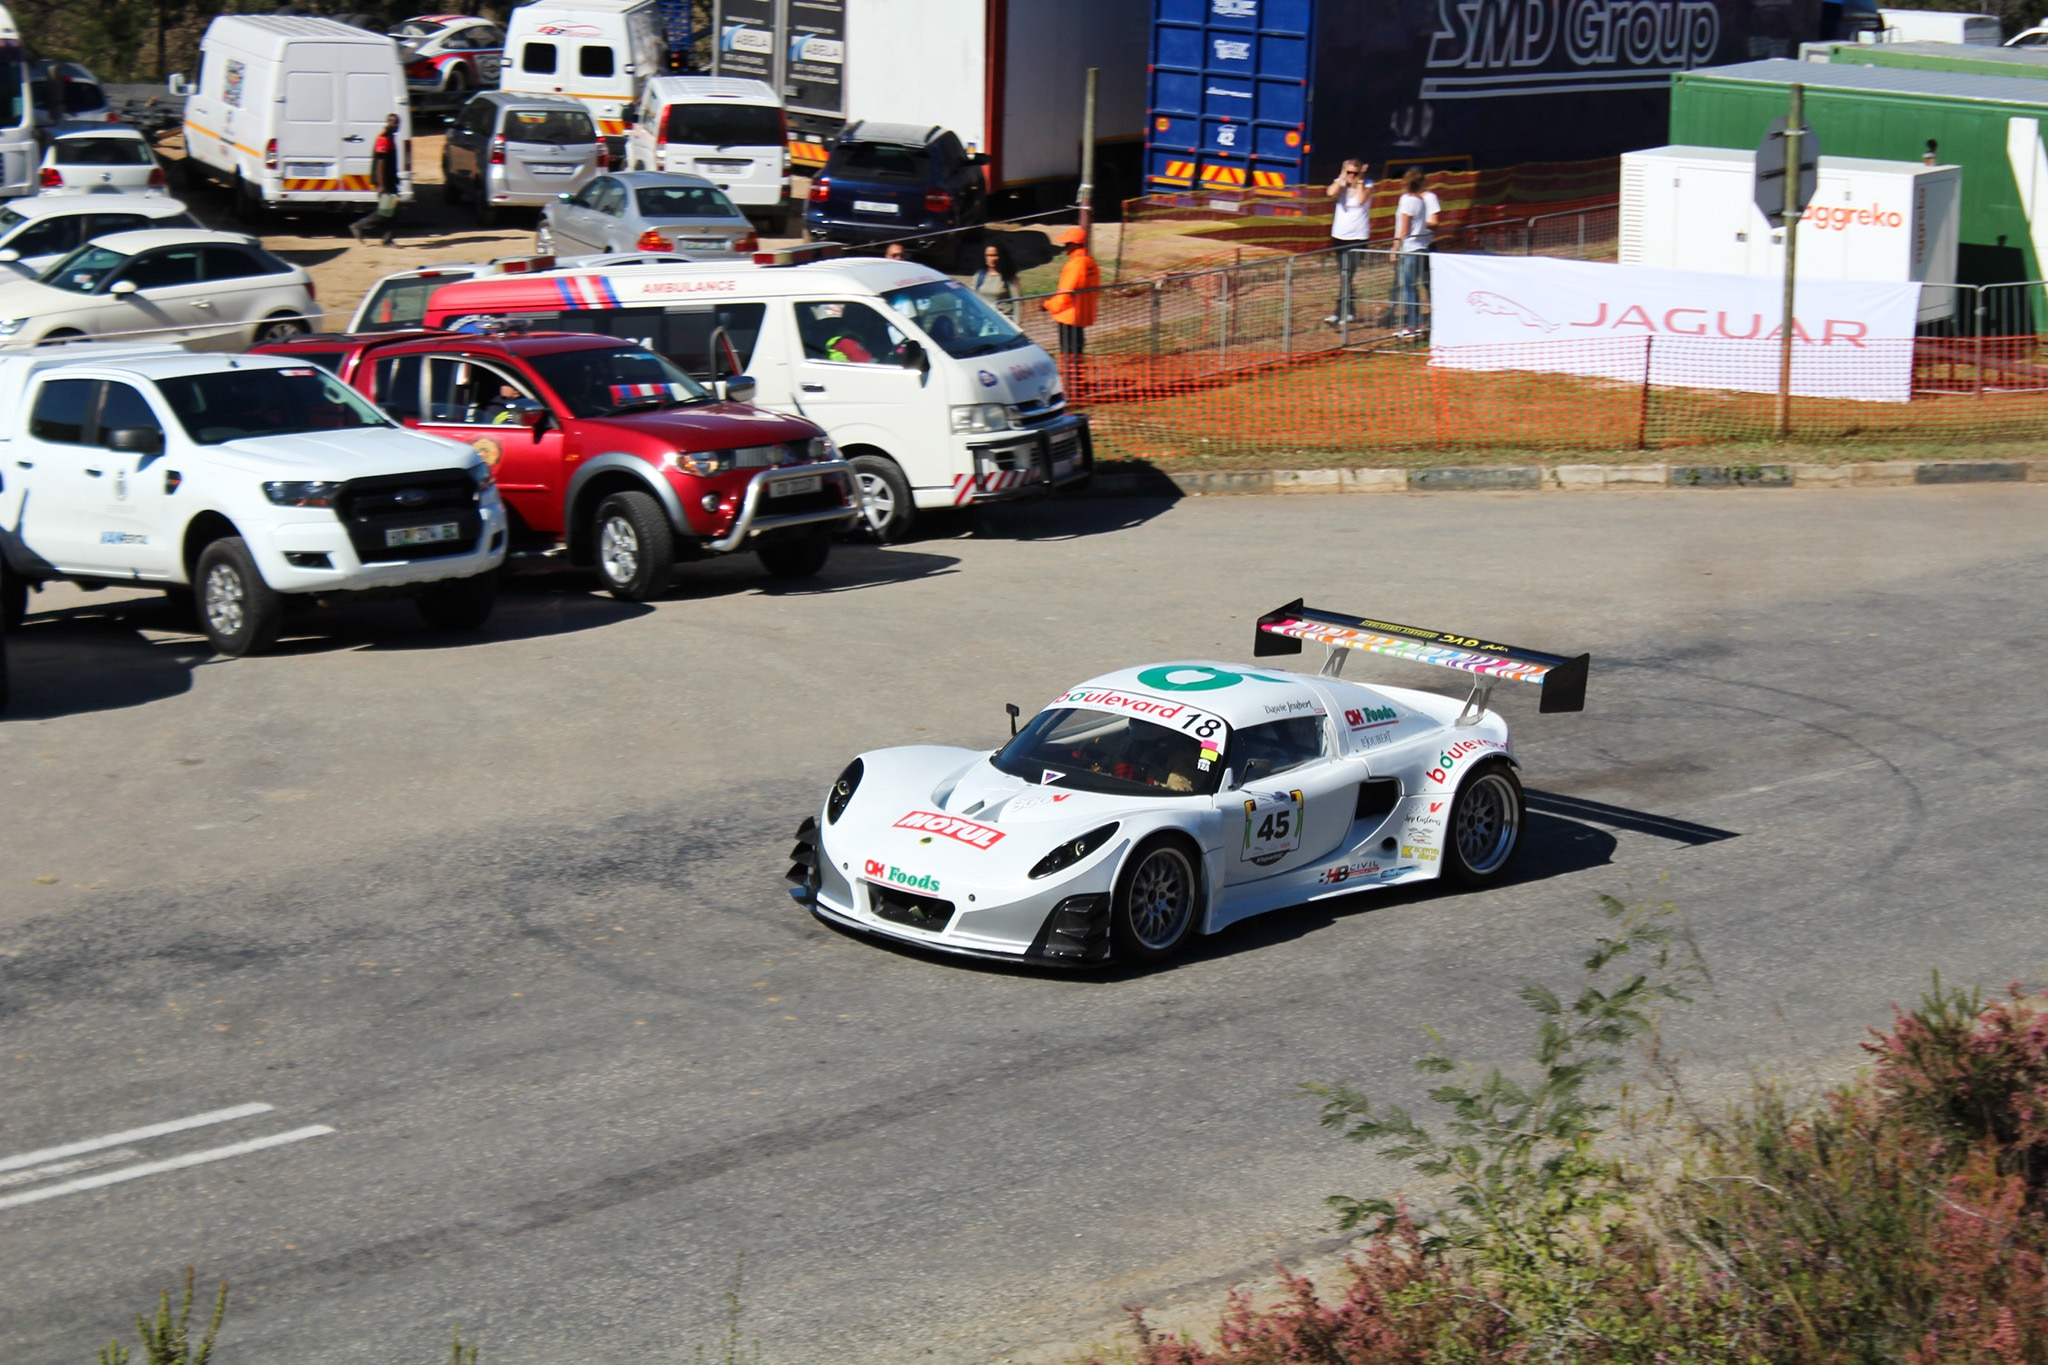 Cars for Sale by Smd New Nine Cool Cars From the 2018 Jaguar Simola Hillclimb King Of the